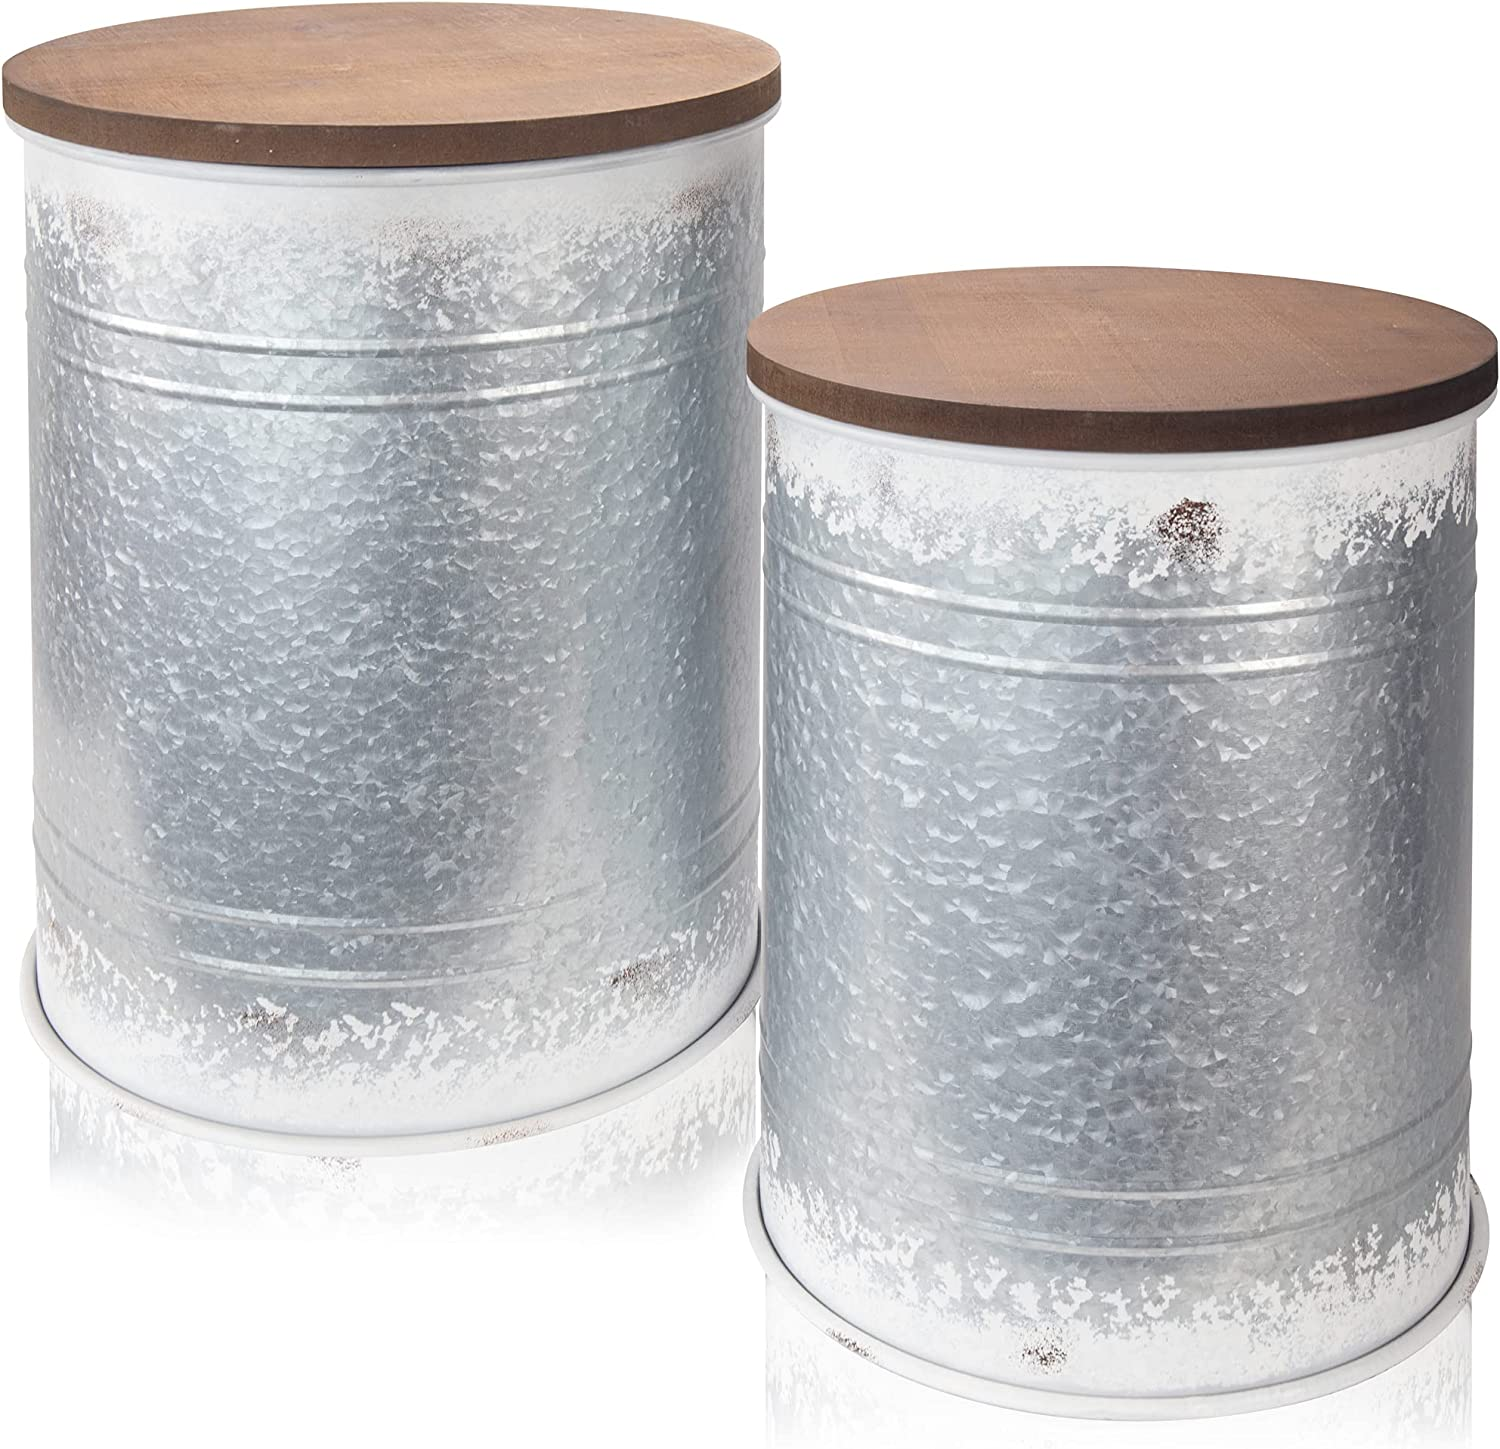 Farmhouse Storage End Table Set of 2 - Galvanized Metal Side Tables with Rustic Wooden Lid - Beautiful Barrel Style Blanket Storage to Enhance Your Home Decor and Outdoor Porch Furniture